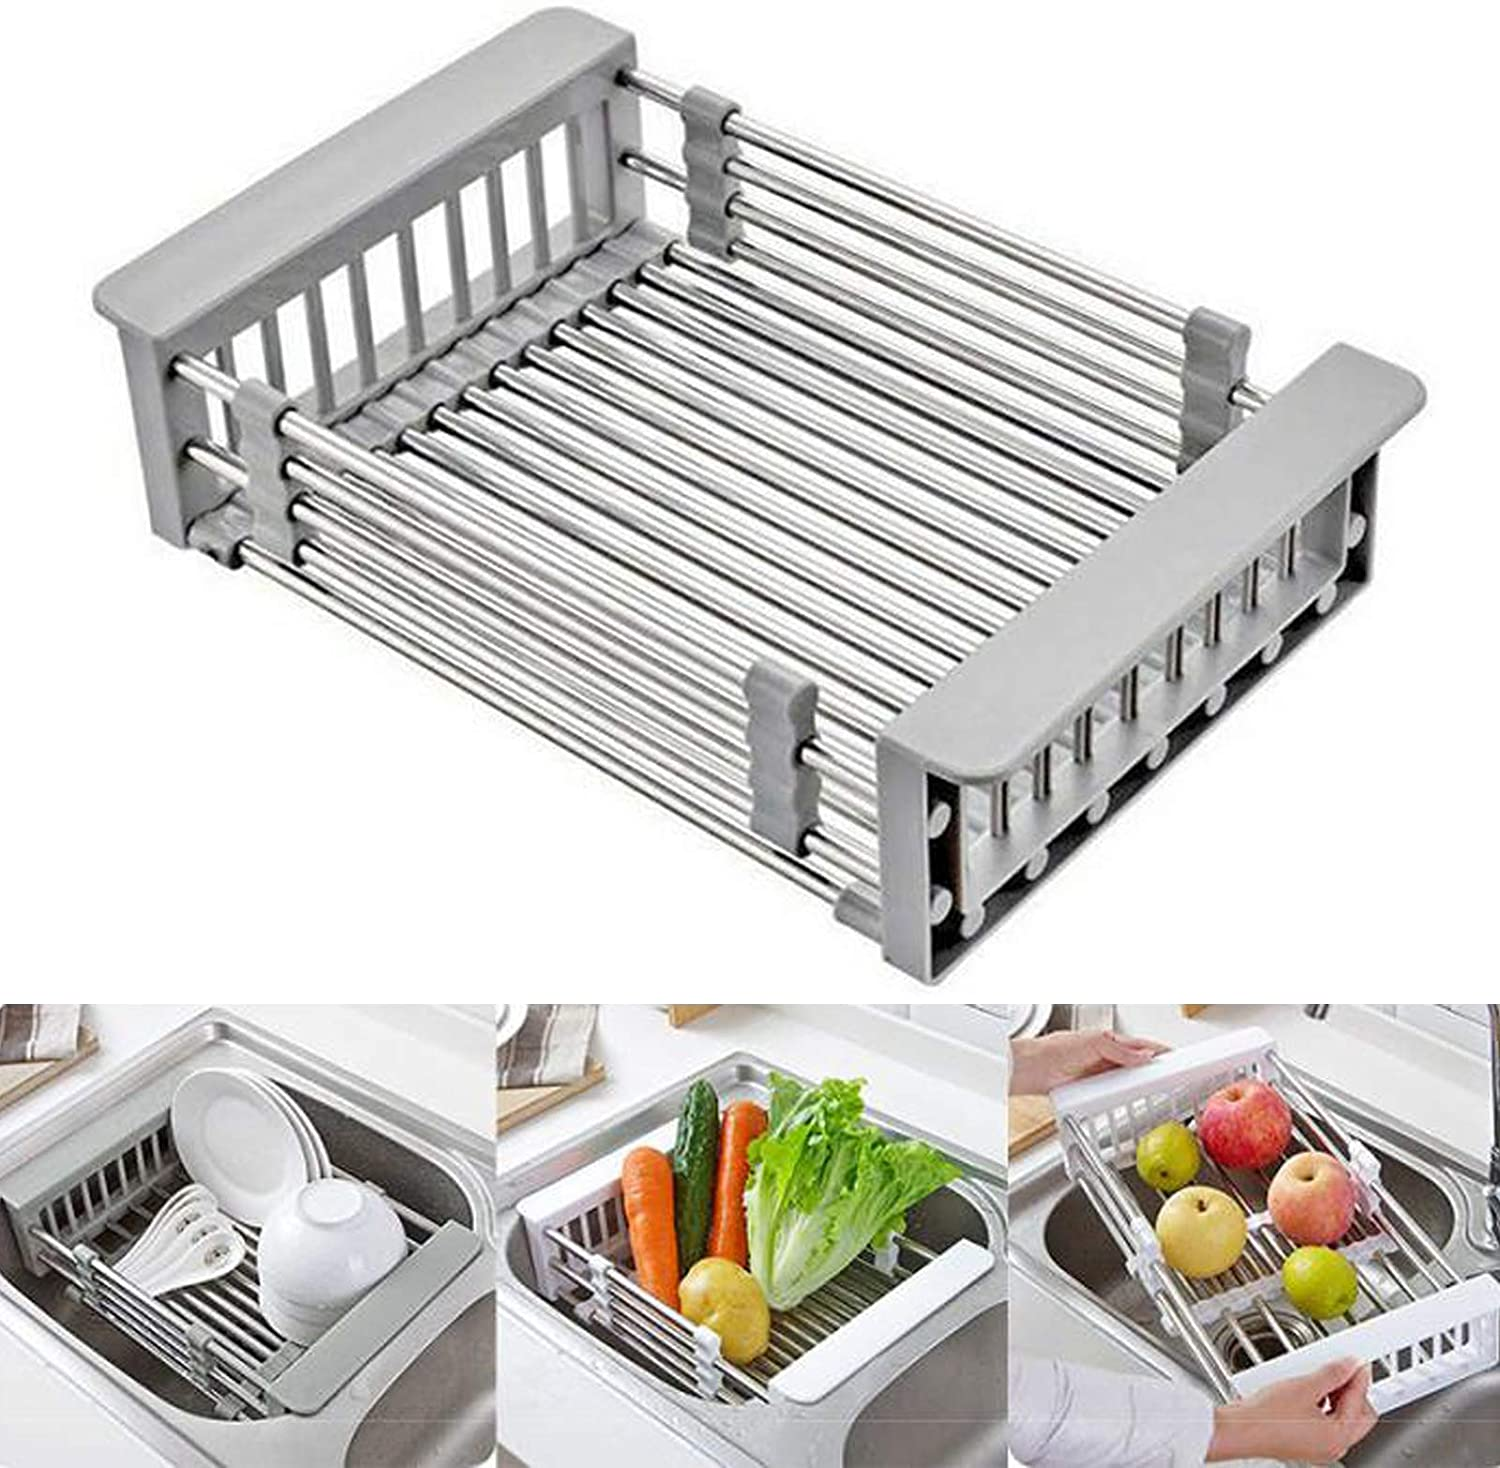 Retractable Stainless Steel Sink Strainer Drain,Telescopic Drain Basket with Adjustable Armrest, Kitchen Rack Drain Basket, Over The Sink Dish Drying Rack.